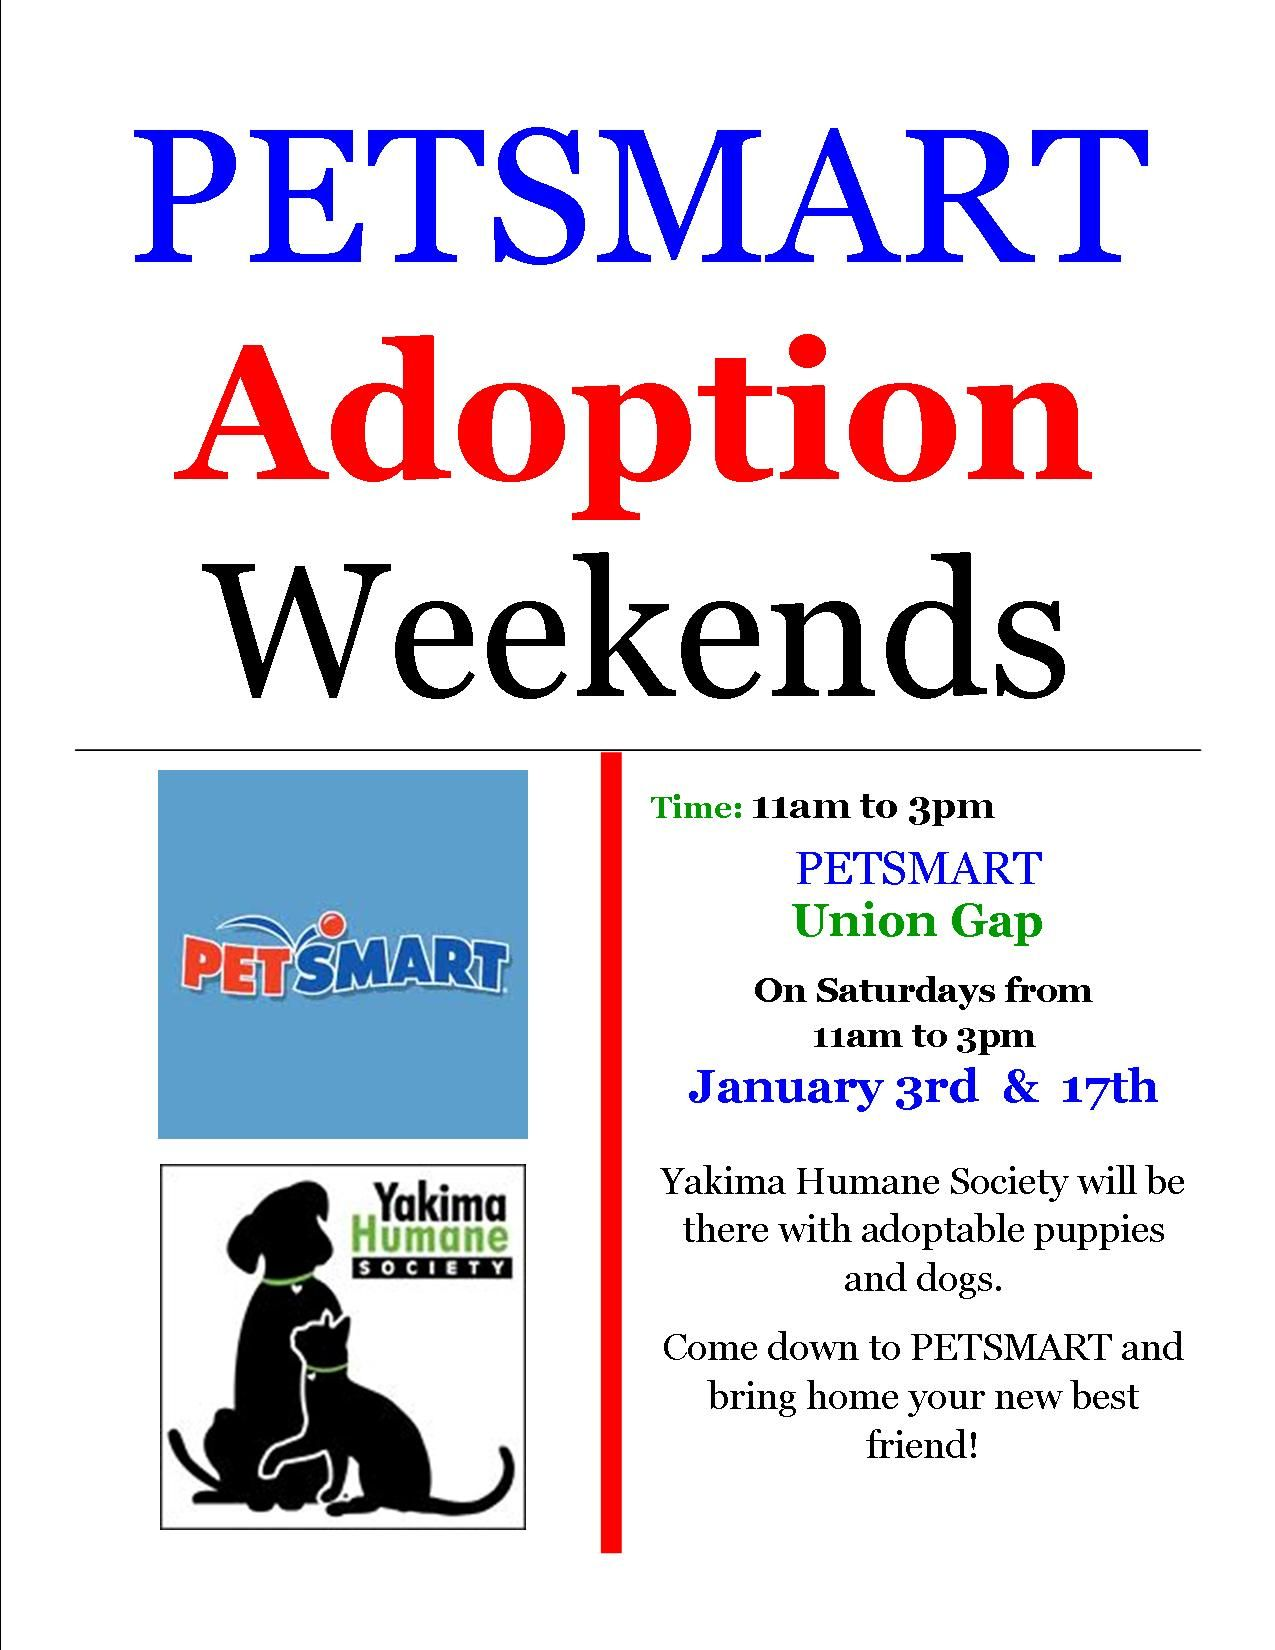 Petsmart Adoption Weekends With The Yakima Humane Society Come Down To Petsmart In Union Gap On Saturday January 17th Union Gap Petsmart Humane Society